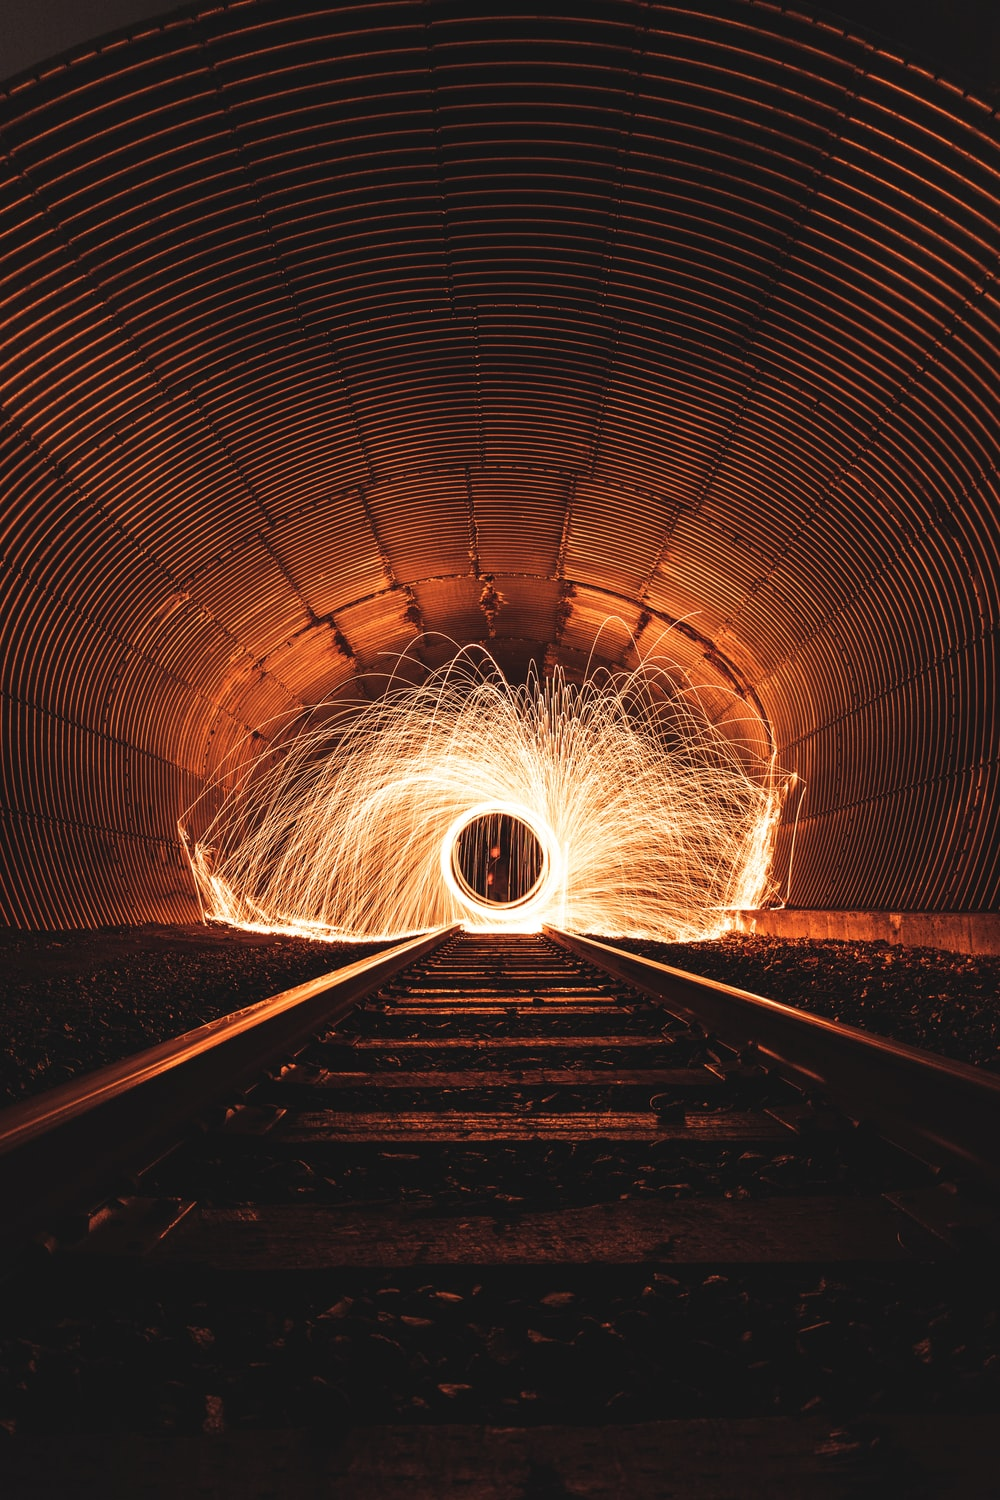 tunnel with lights turned on during night time